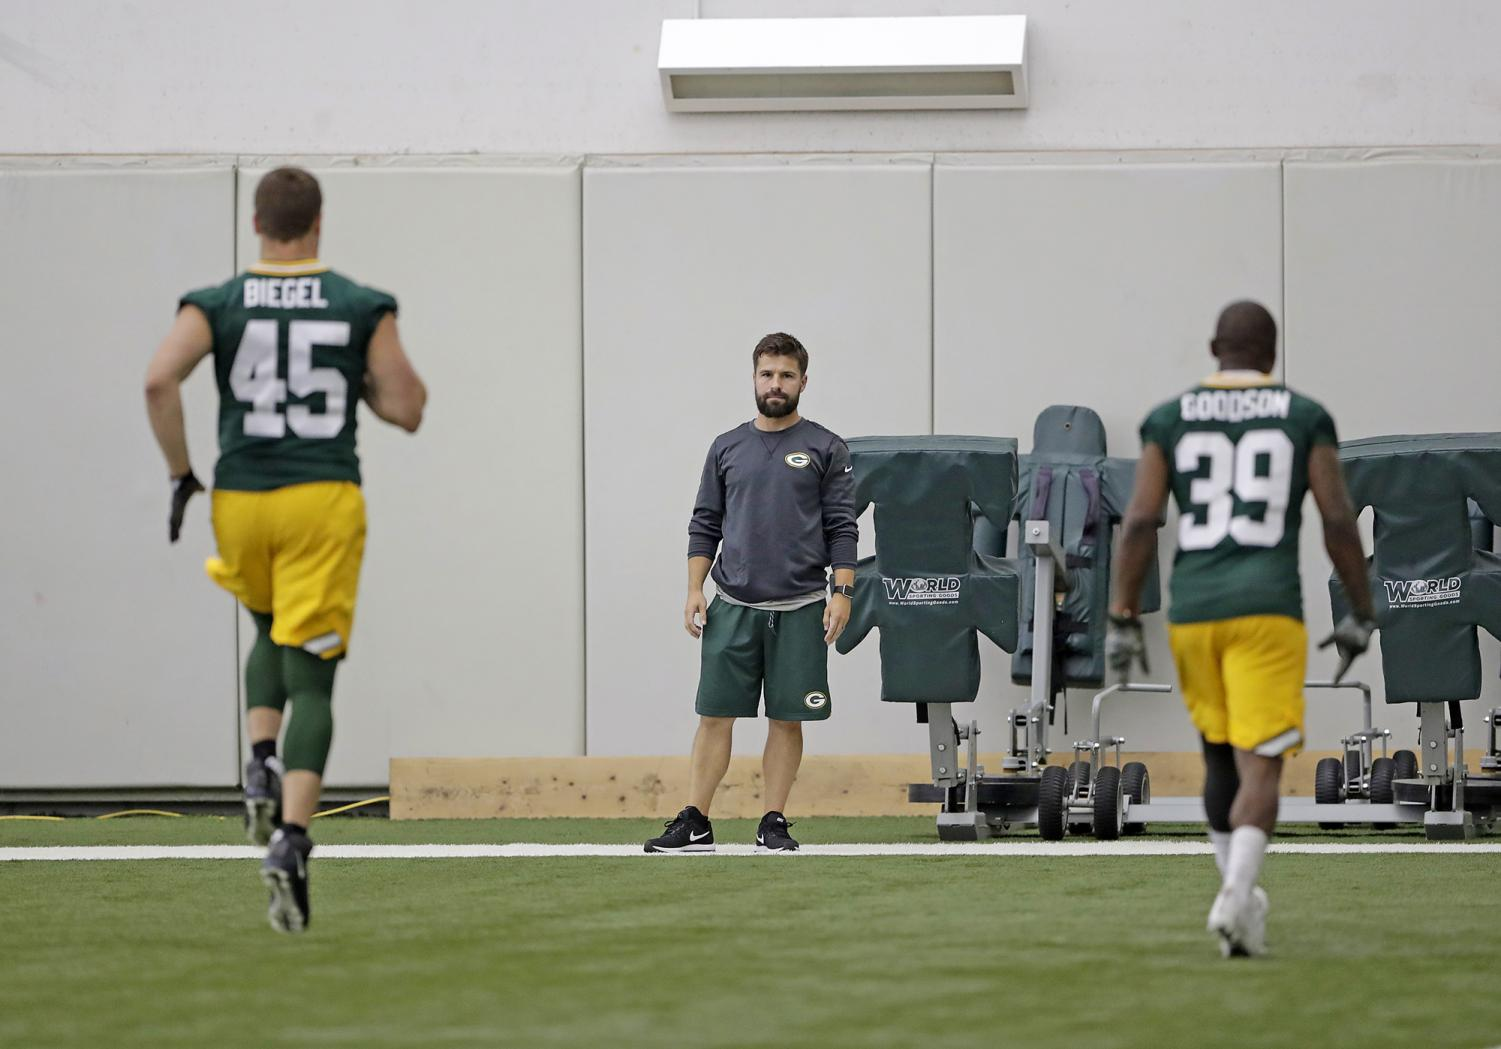 Nate Weir, athletic trainer, is shown above supervising the conditioning of Green Bay Packers players,  Vince Biegel and Demetri Goodson. Weir has worked with the Packers as an athletic trainer for a combined total of 17 years.